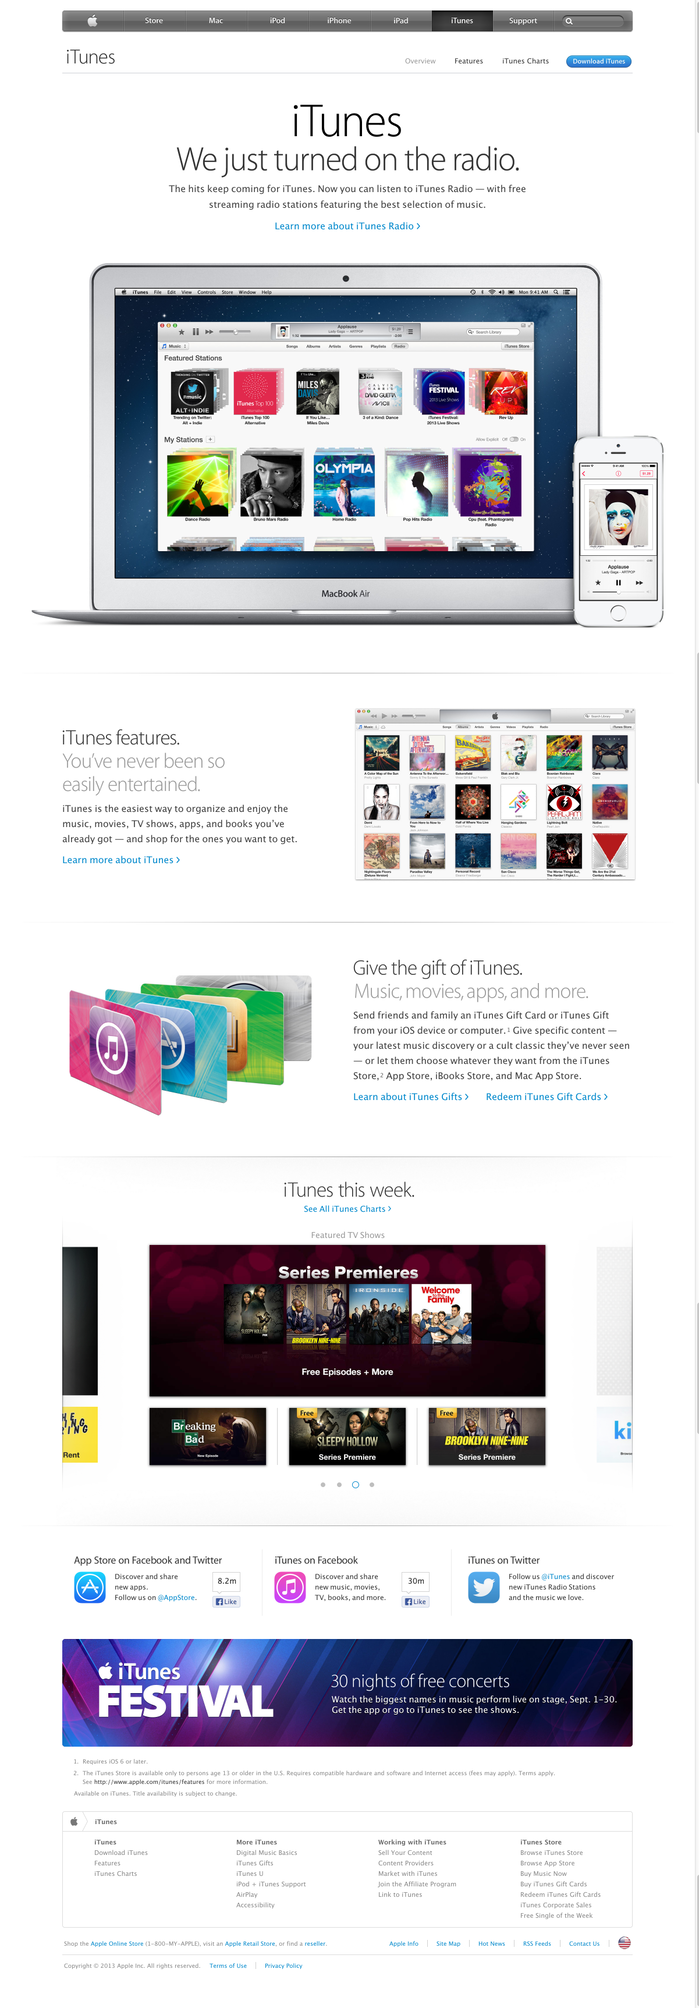 Apple.com (Sep, 2013) 1